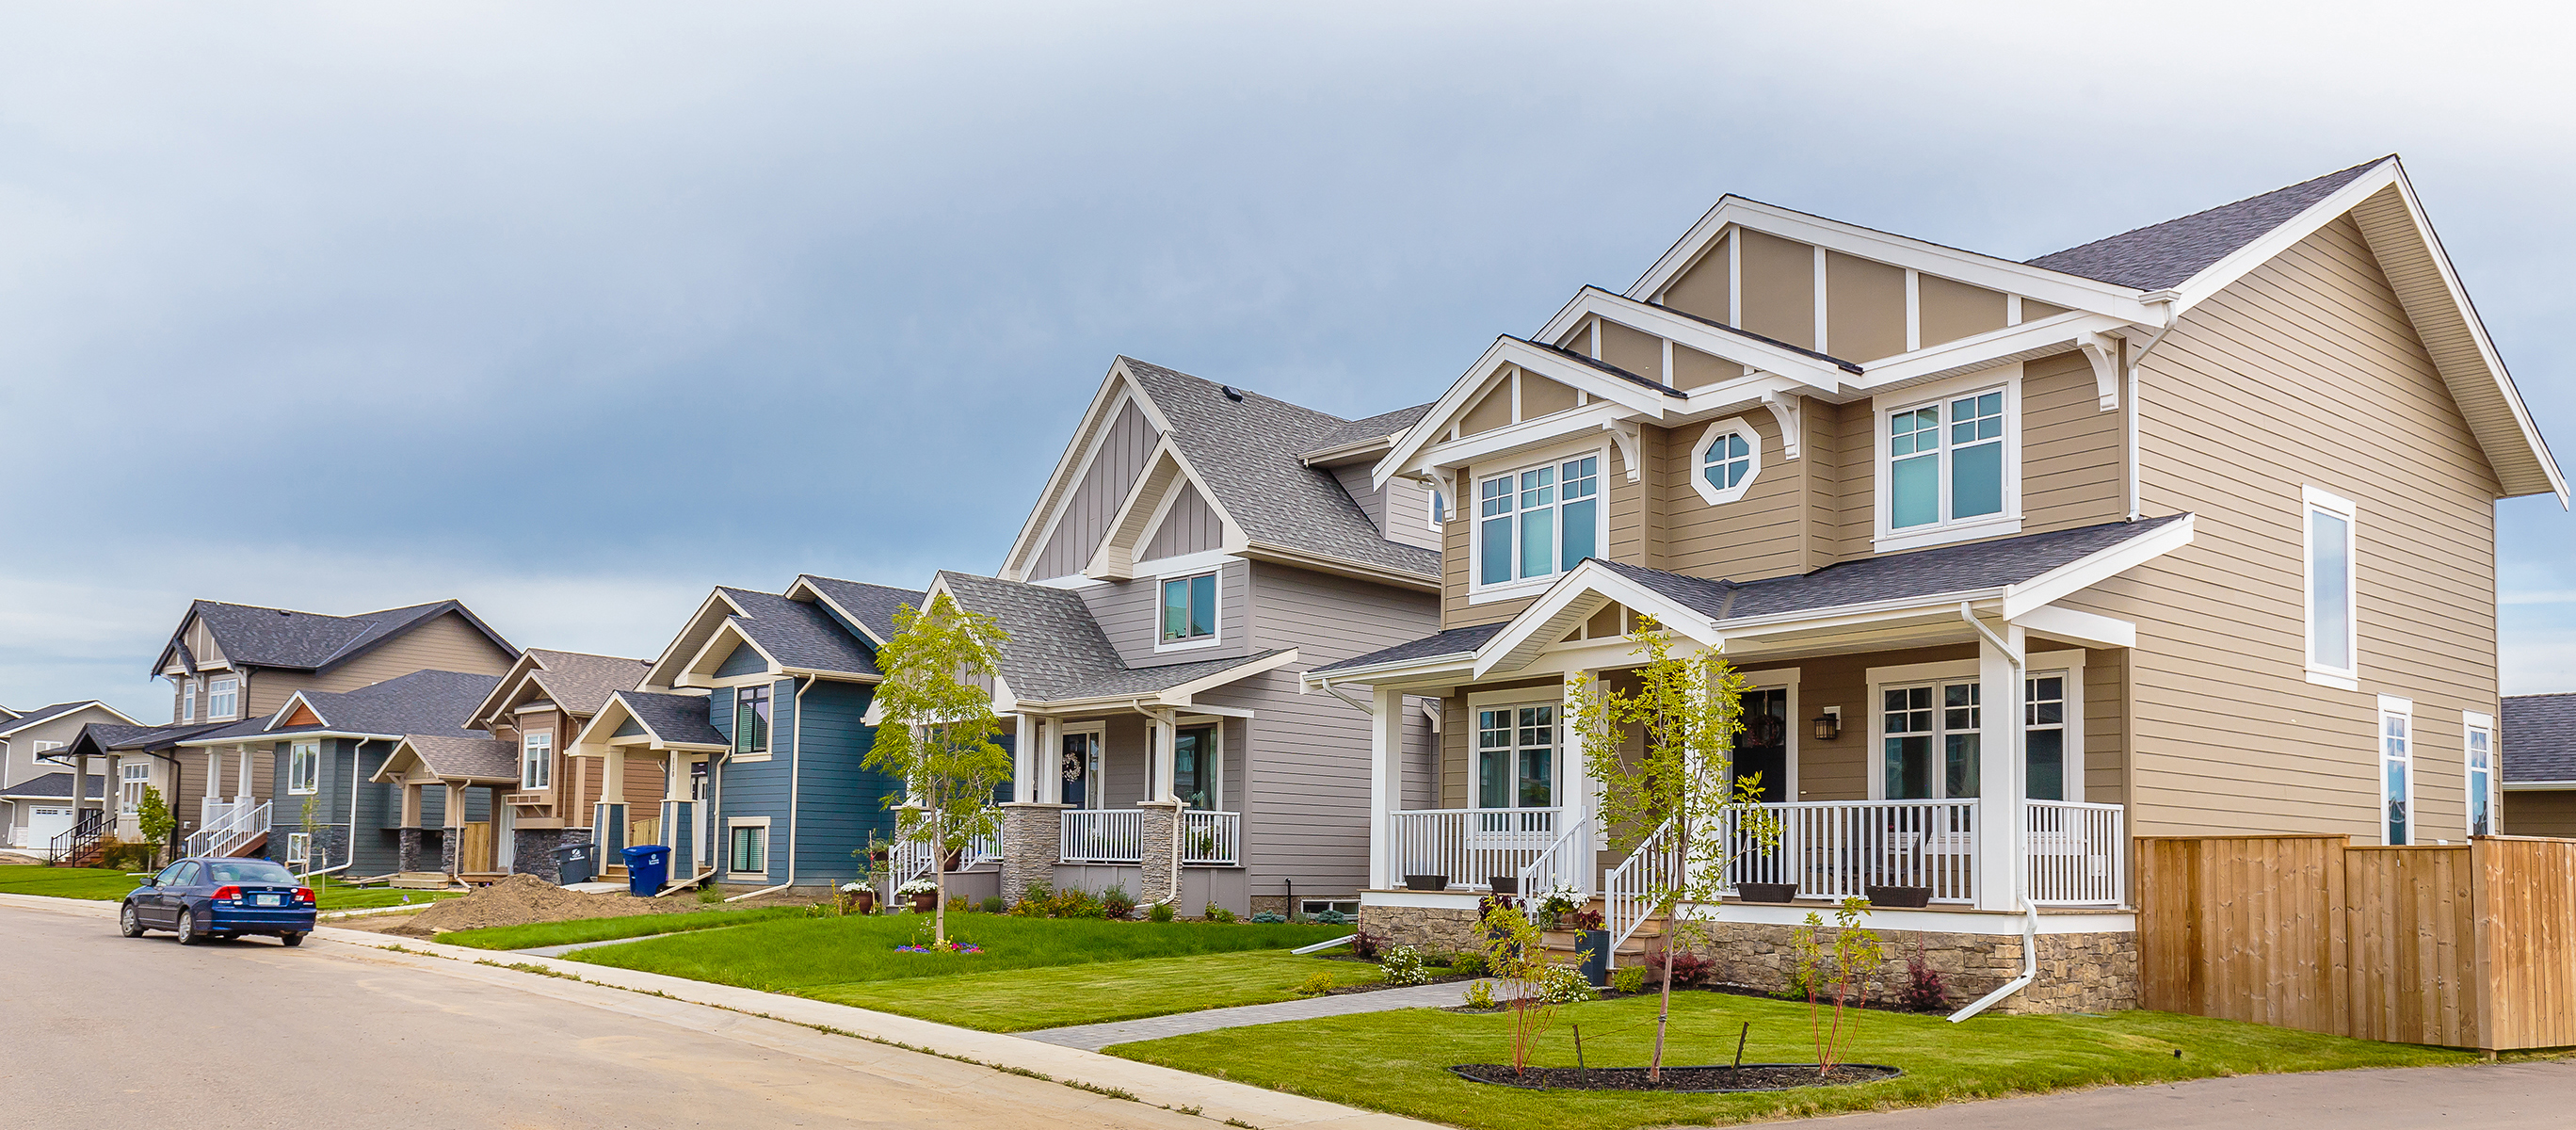 New home models coming this spring the meadows for New home models